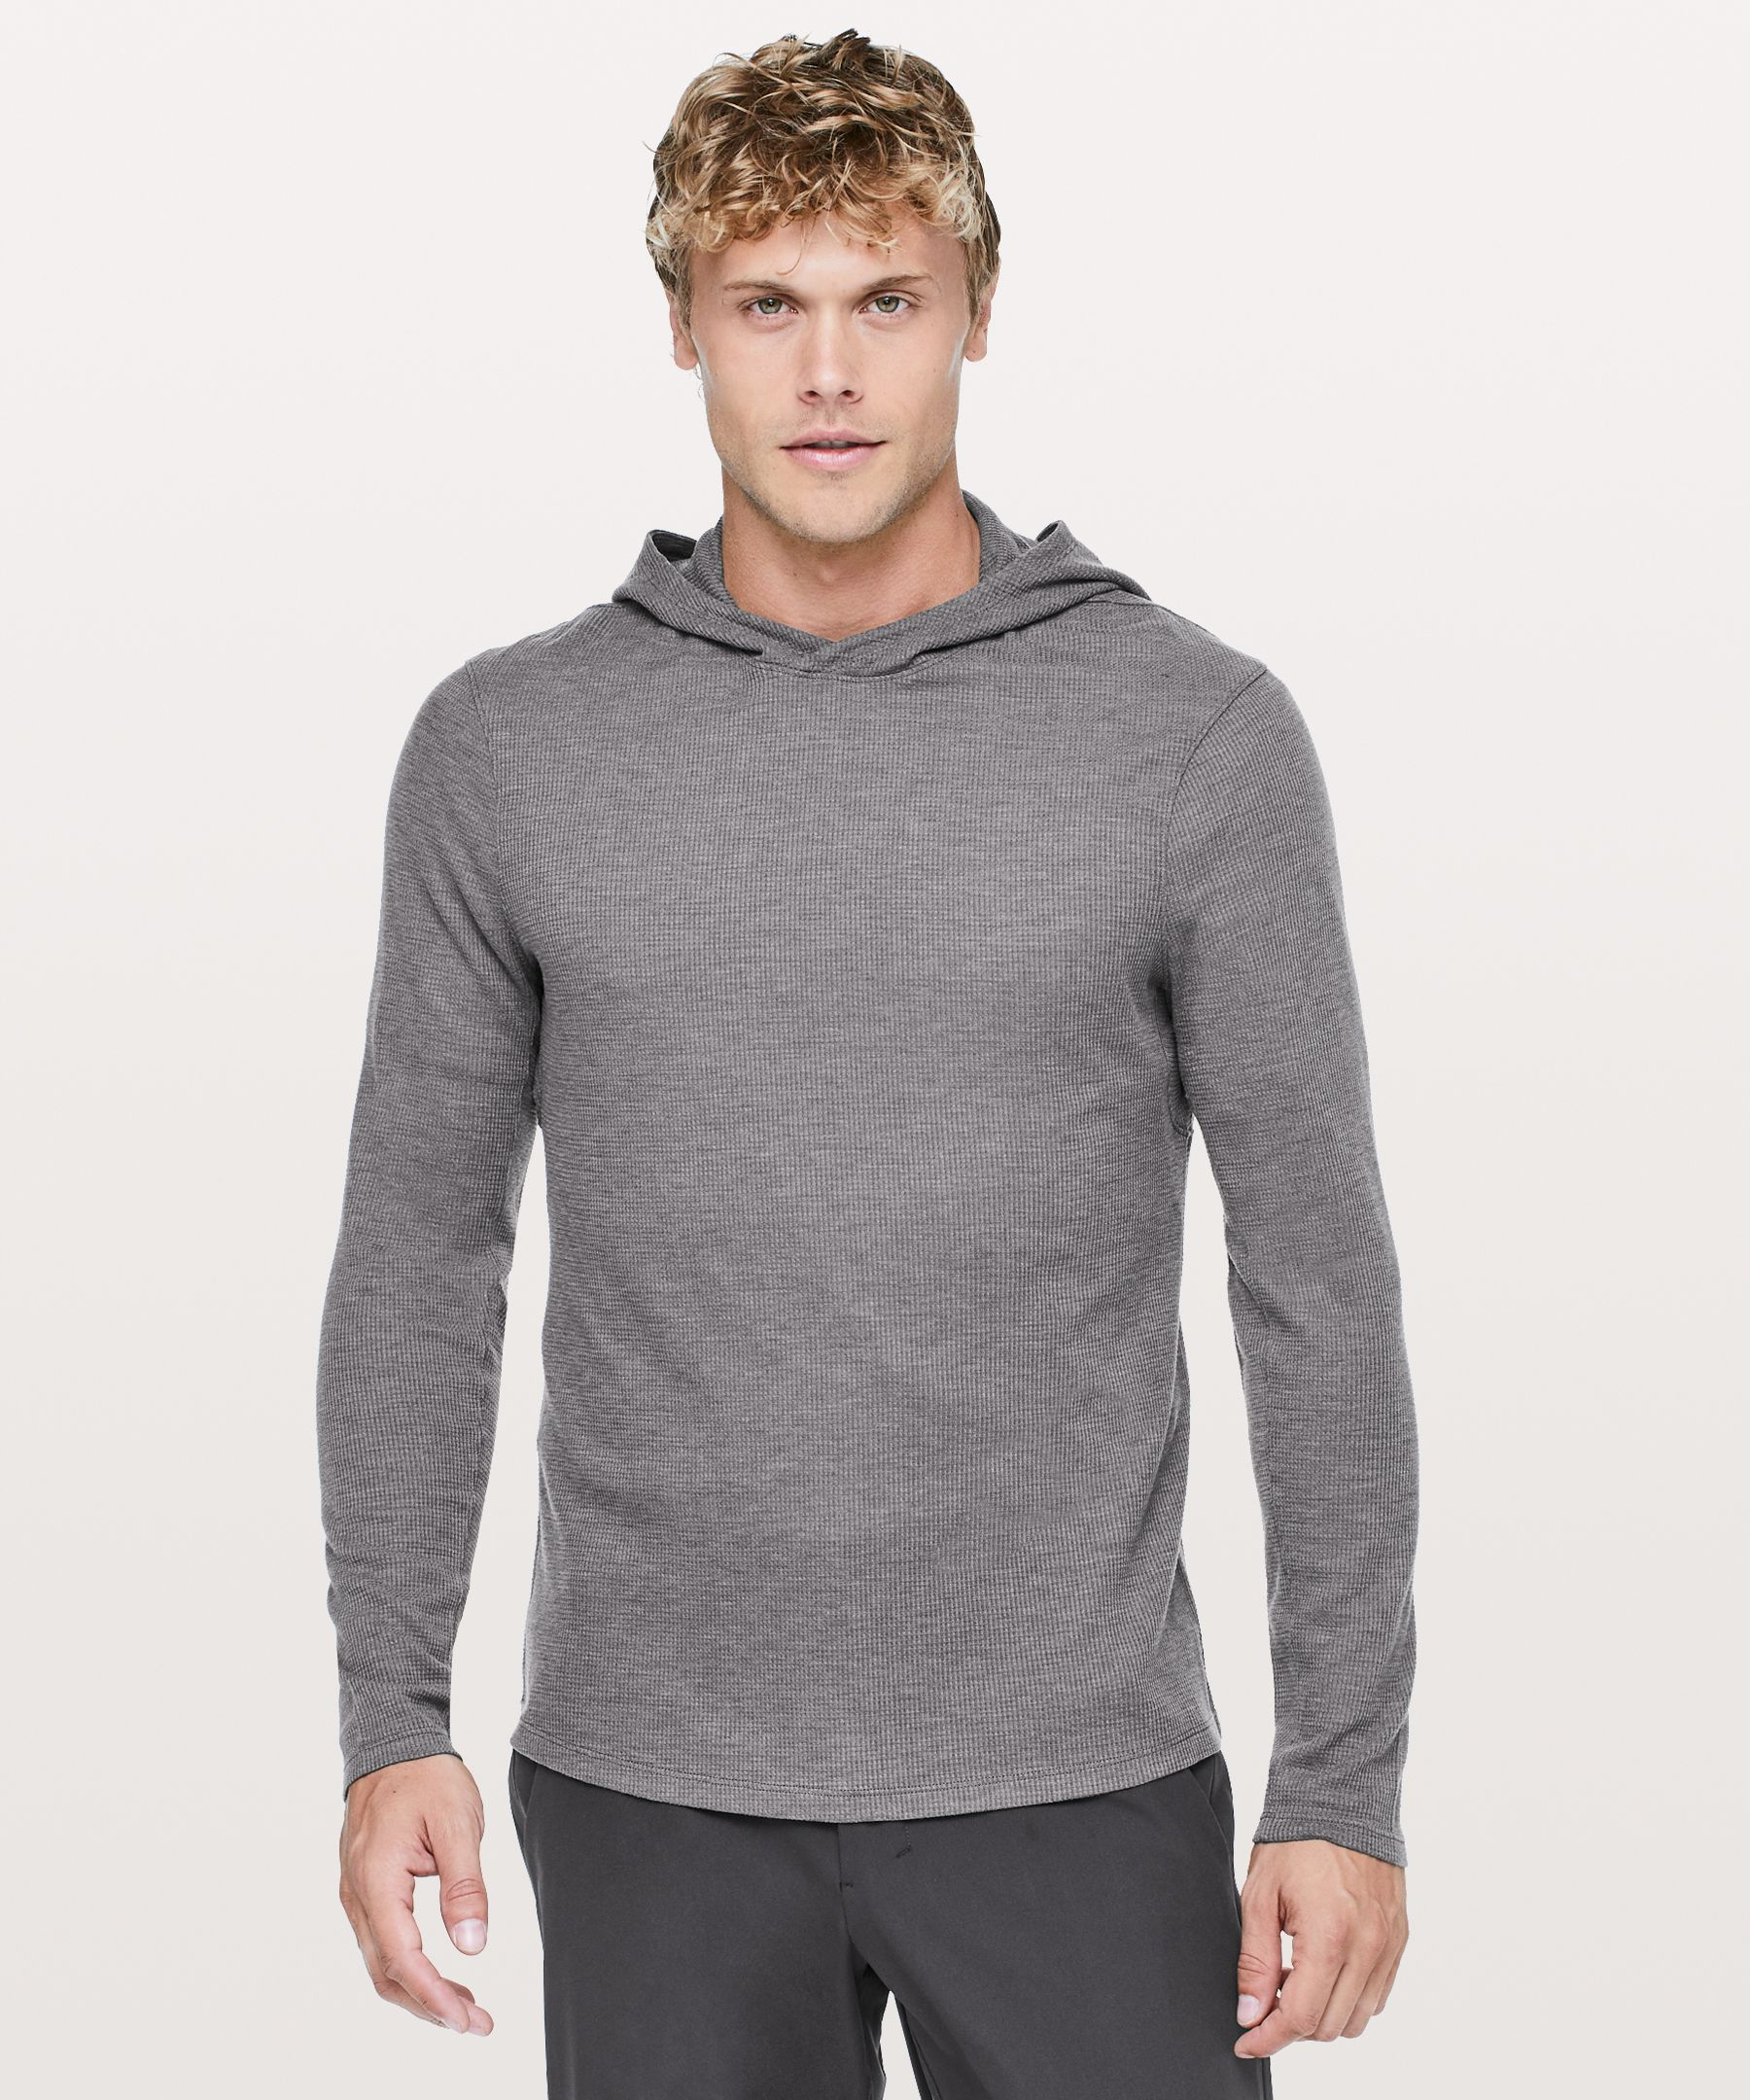 Shift Stitch Hoodie New by Lululemon